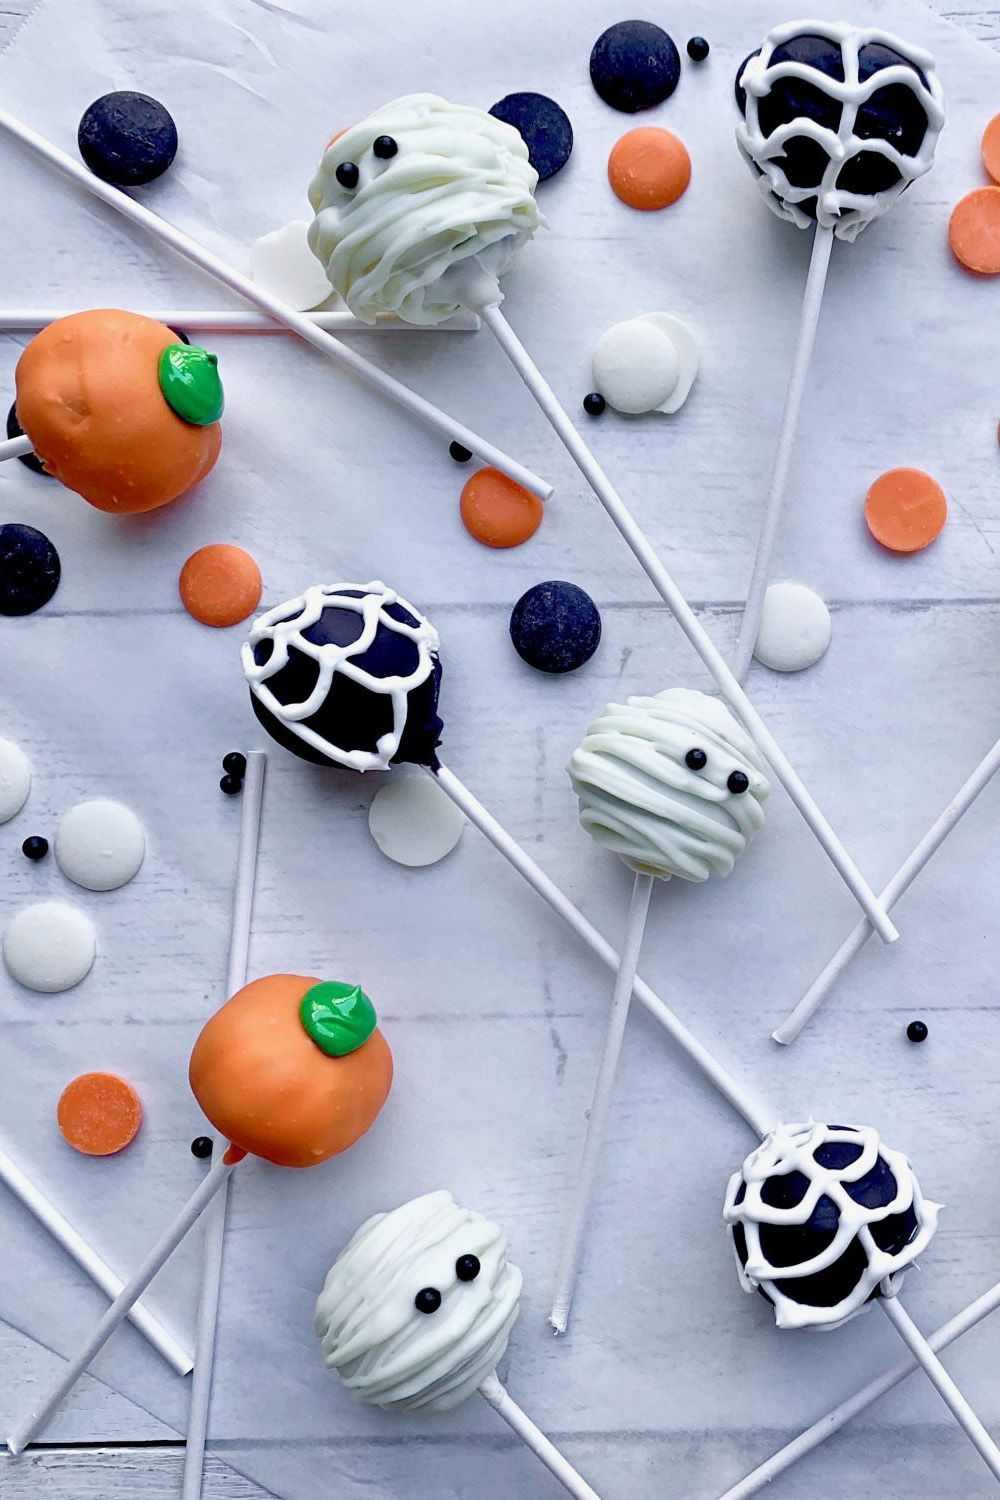 Decorative and cute, our Halloween Cake Pops are very simple to make, only requiring a little legwork for the decorating. Whether you pick up the mummy, the pumpkin, or the spider web cake pop, you can count on them being equally delicious and adorable. #halloweencakepops #pumpkin #cute #easy #ideas #southernliving